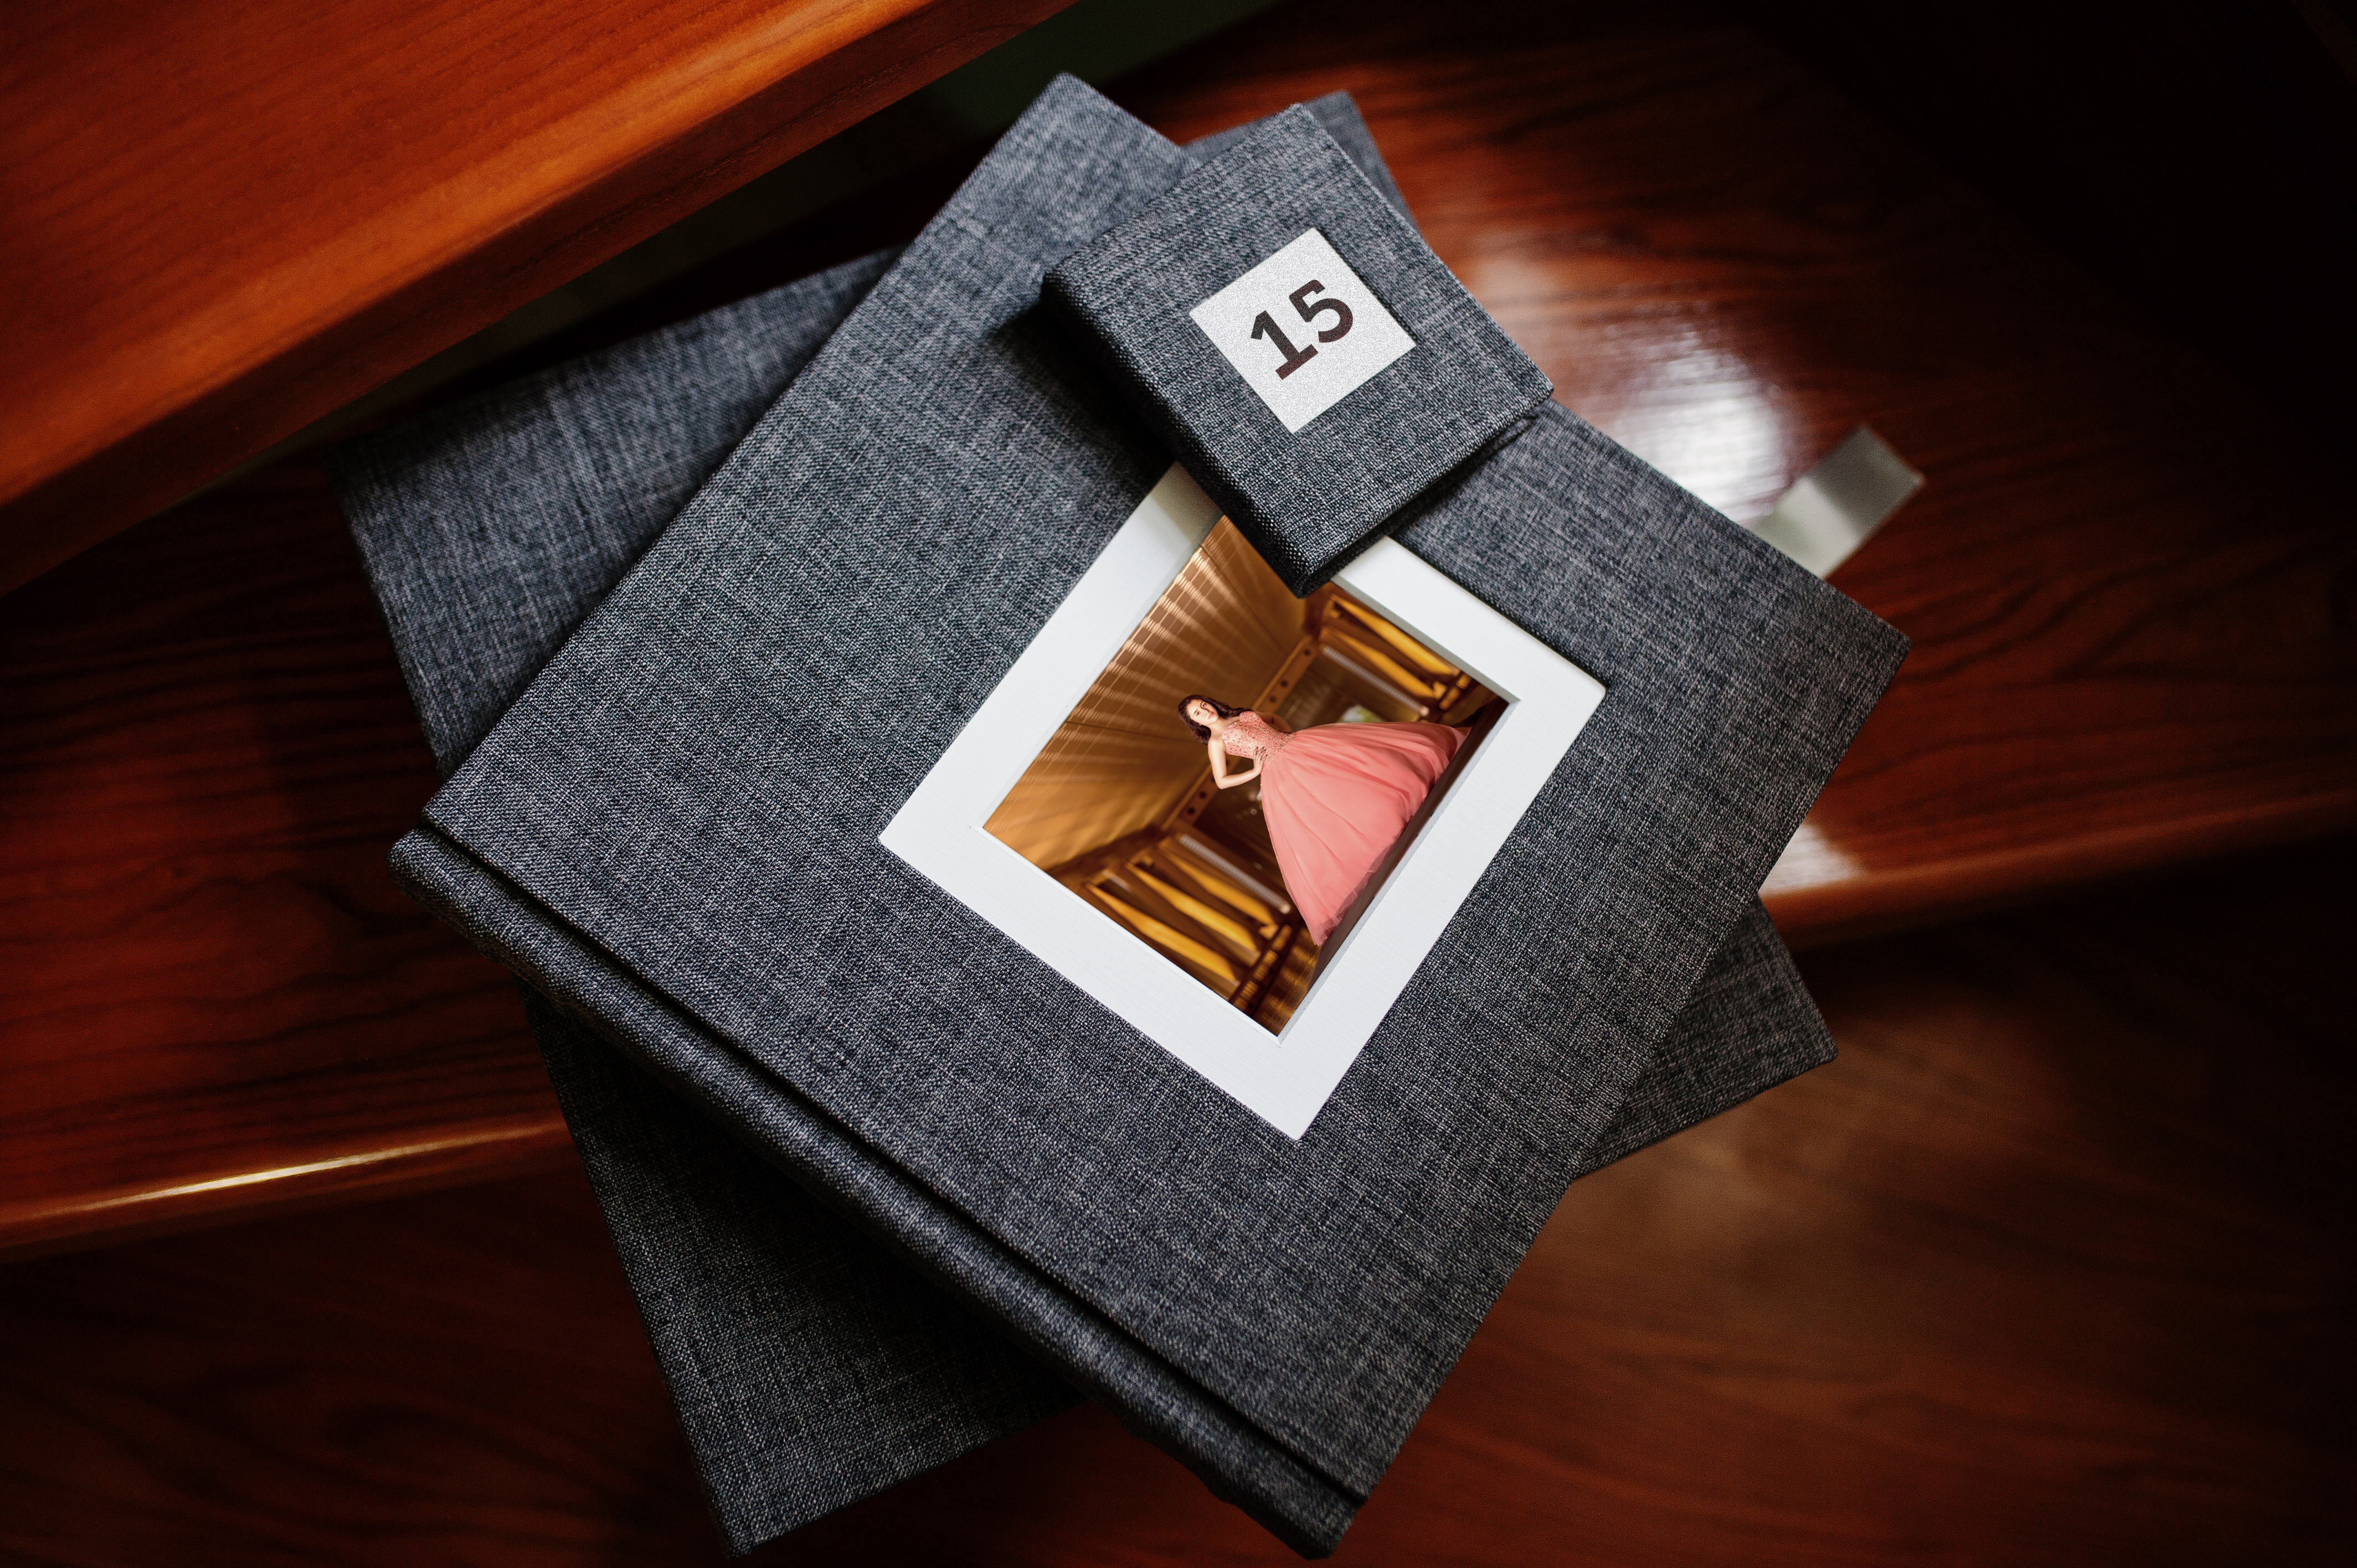 Elegant grey photo book or photo album and flash drive case on w